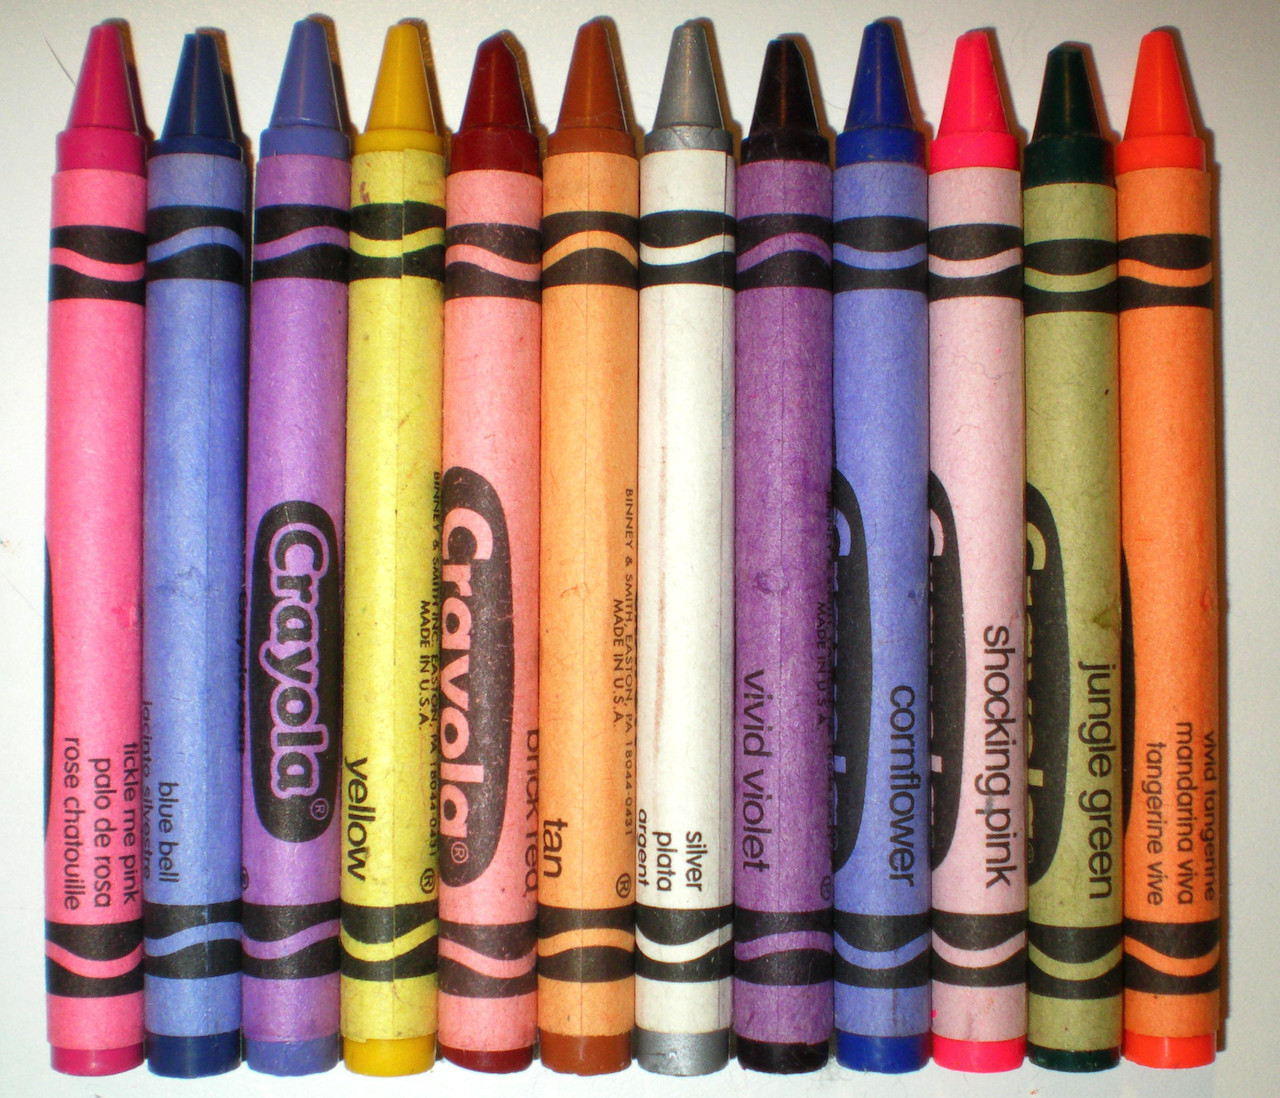 Color could impact image-sharing (Image via Wikimedia)